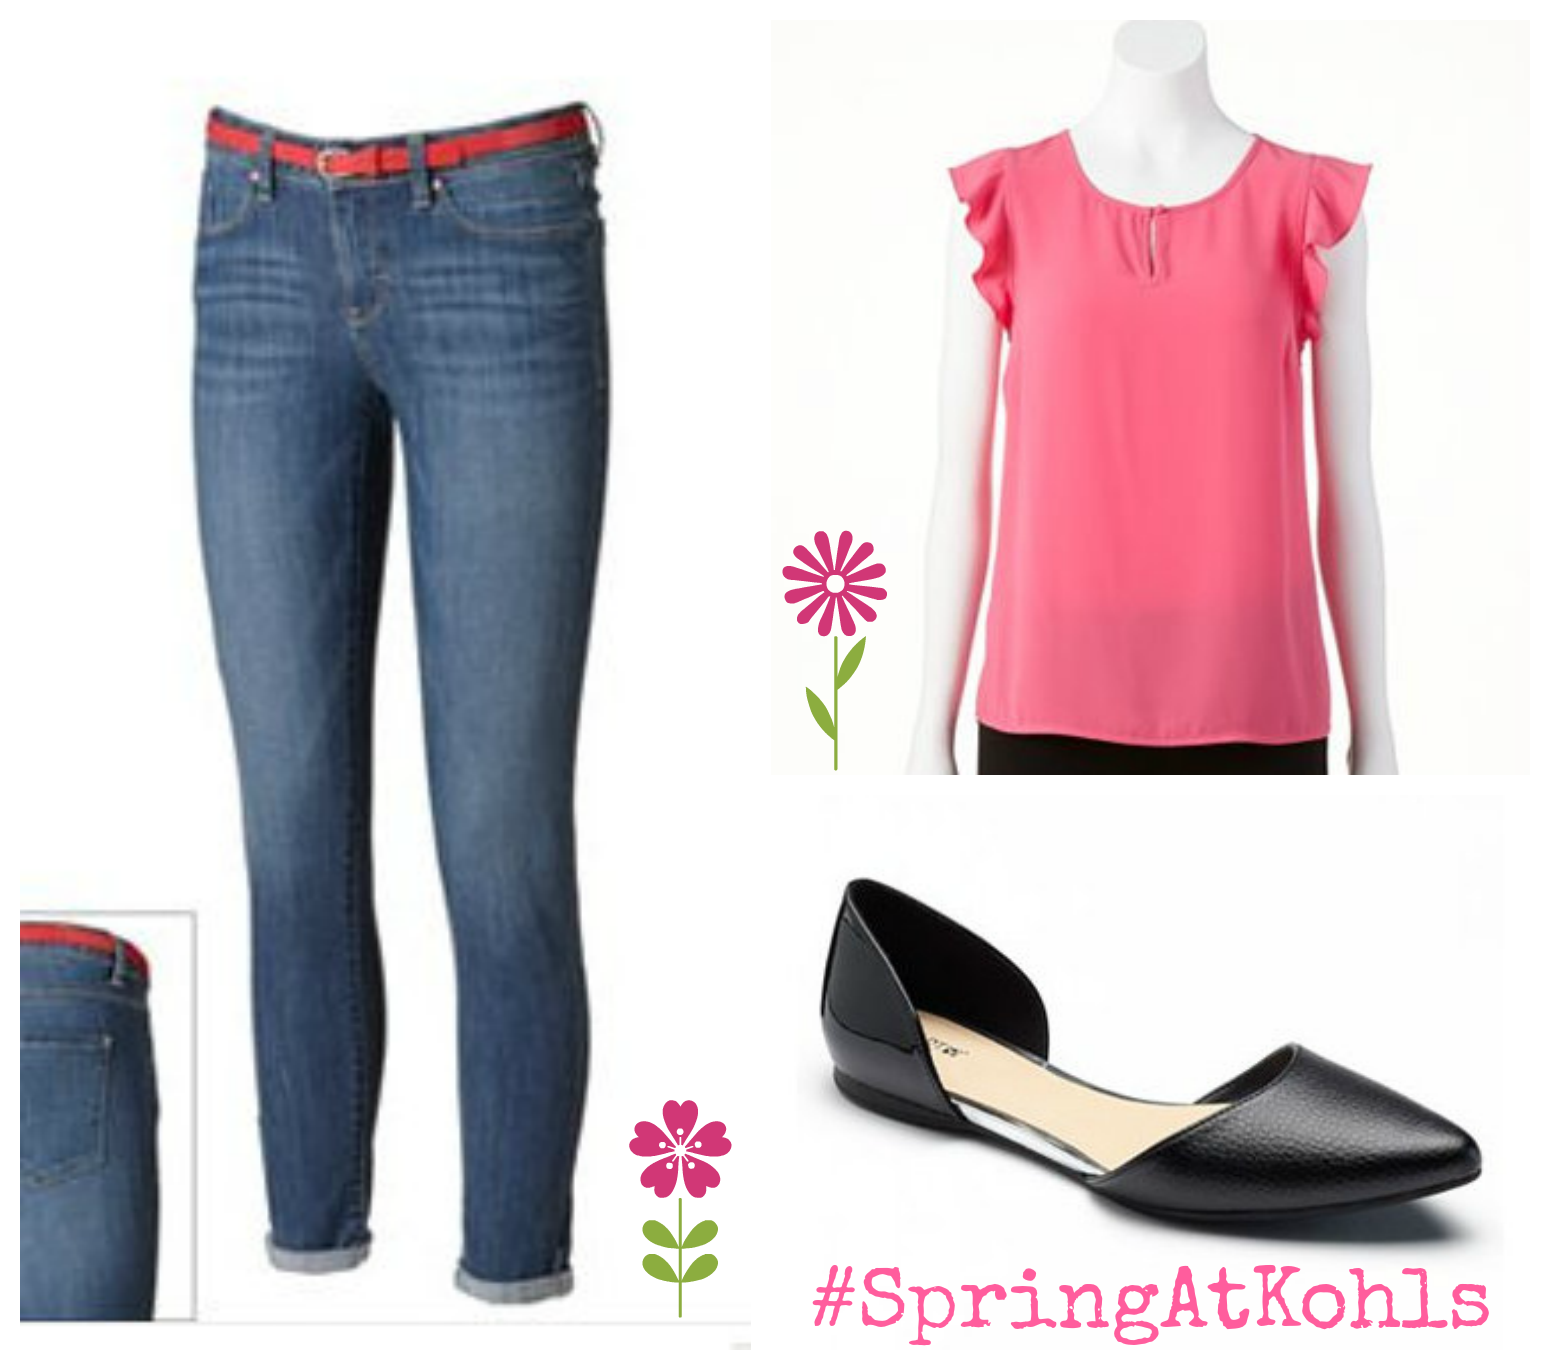 Spring Trends at Kohl's #MC #SpringAtKohls #Sponsored